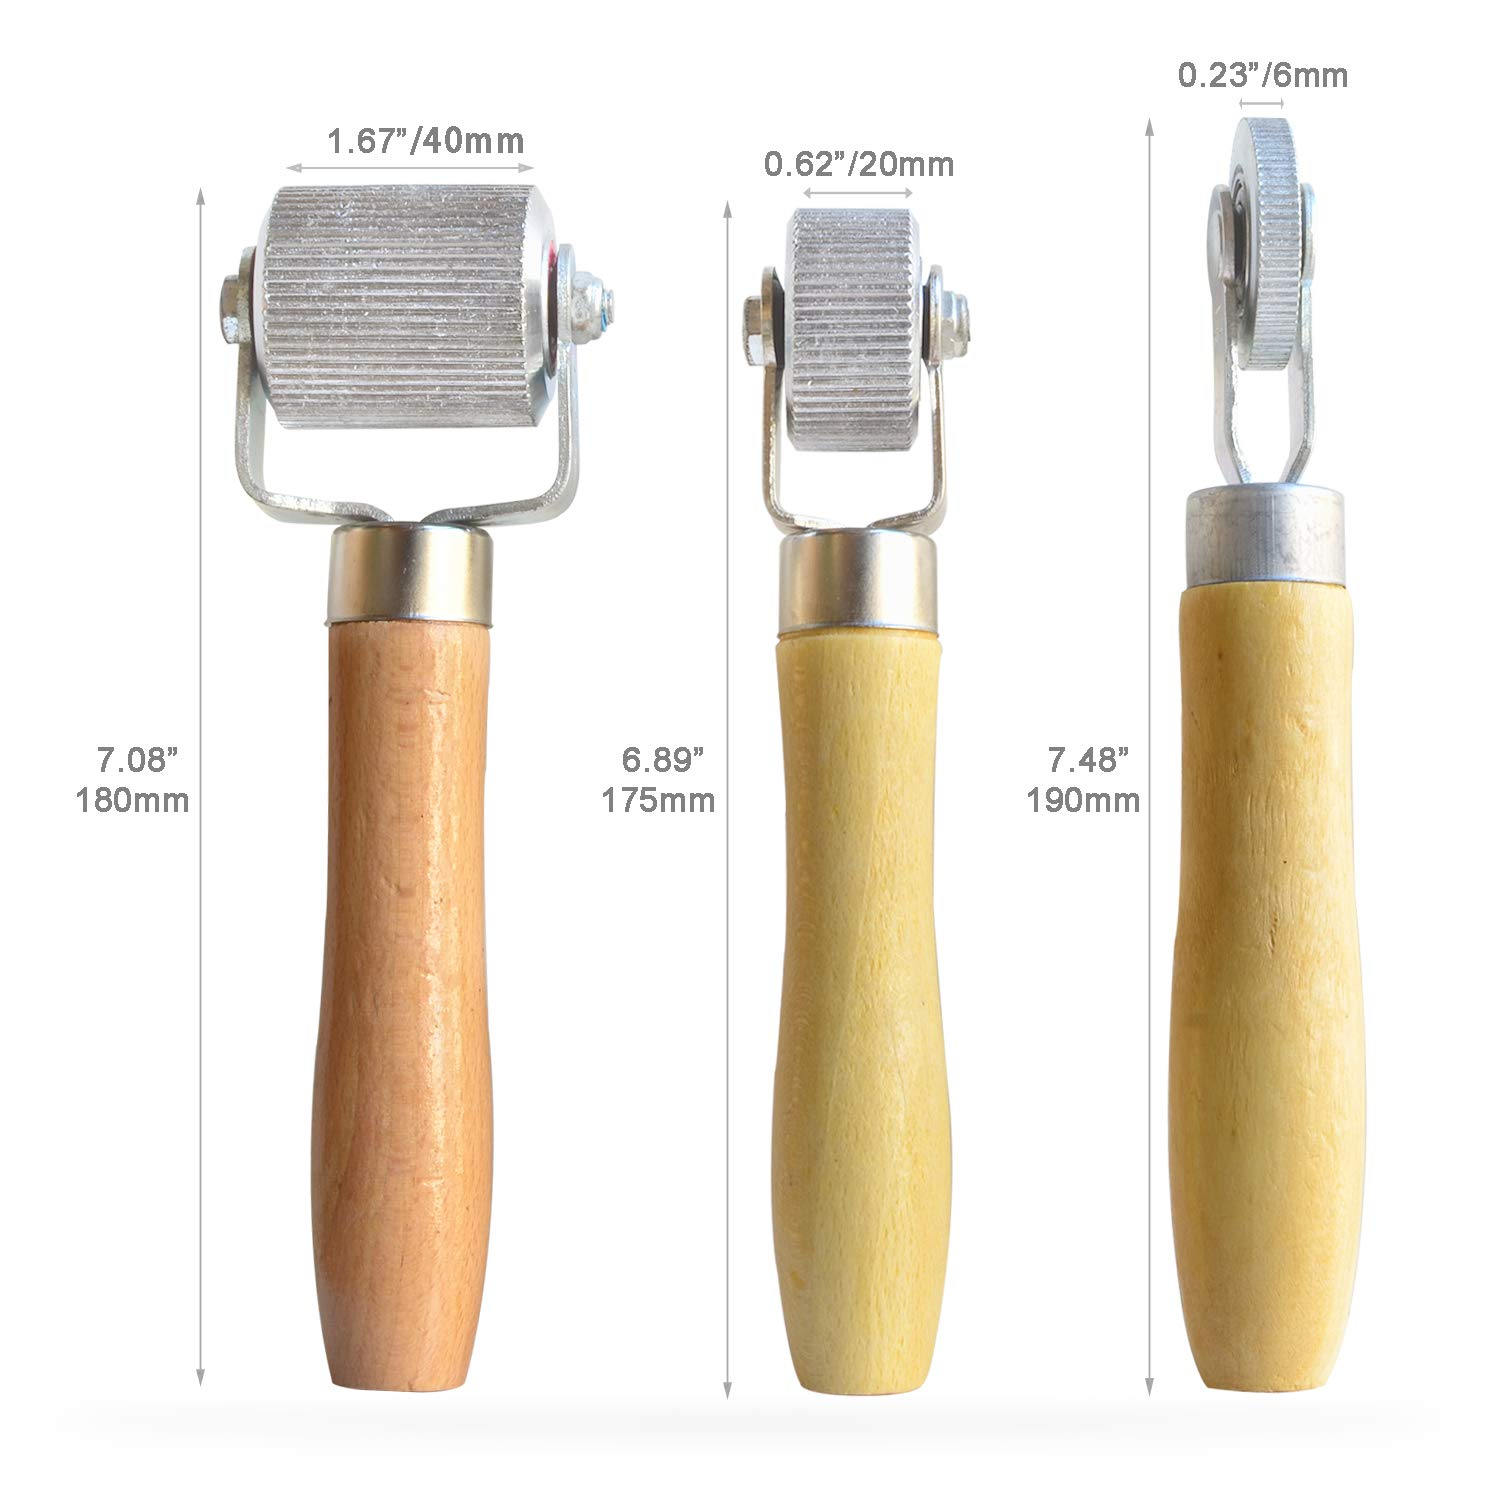 Automotive Sound Deadener Application Installation Metal Roller with Wooden Handle Interior Accessories Sound Noise Proof Insulation Tool ITEQ 3 Pcs Car Sound Deadening Roller